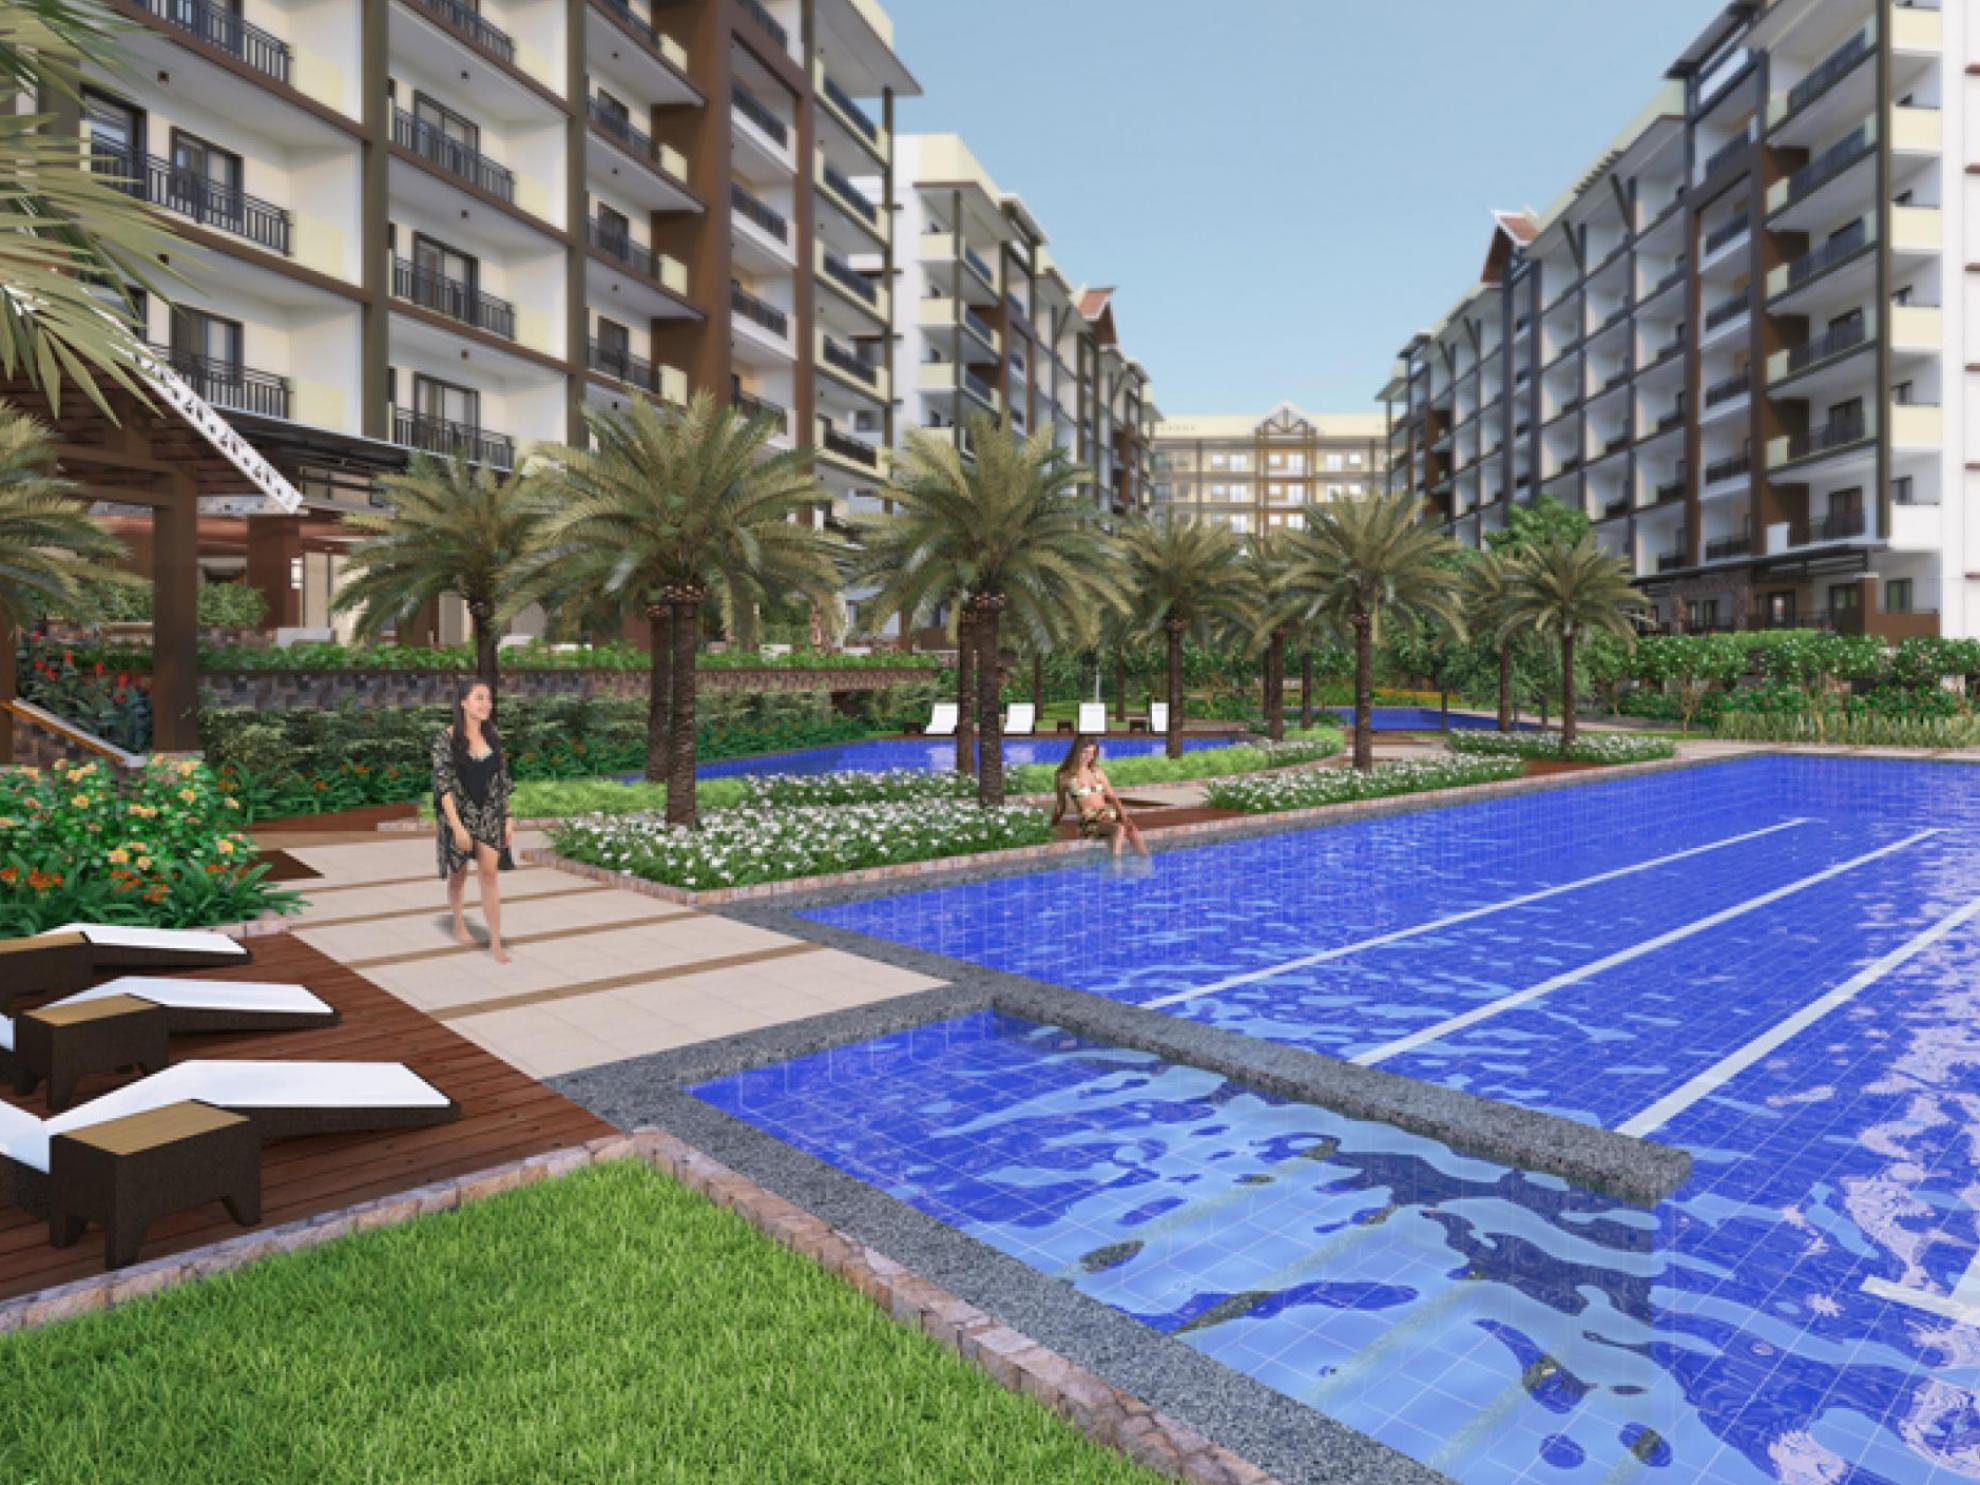 Alea Residences to offer sophisticated suburban living experience in Cavite